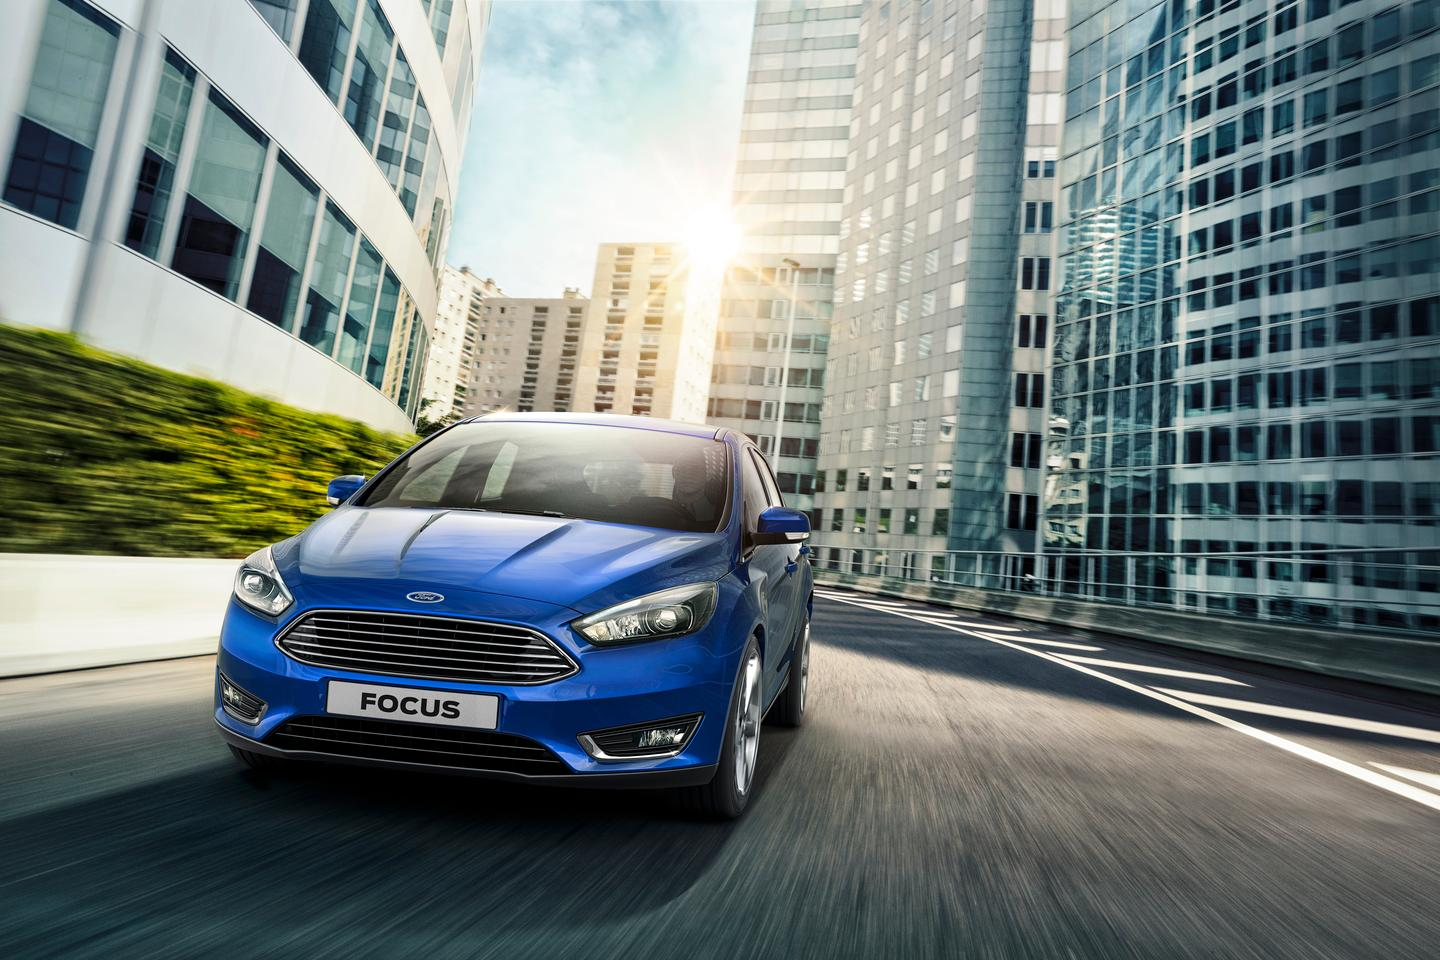 The 2015 Ford Focus reflects the company's global design language